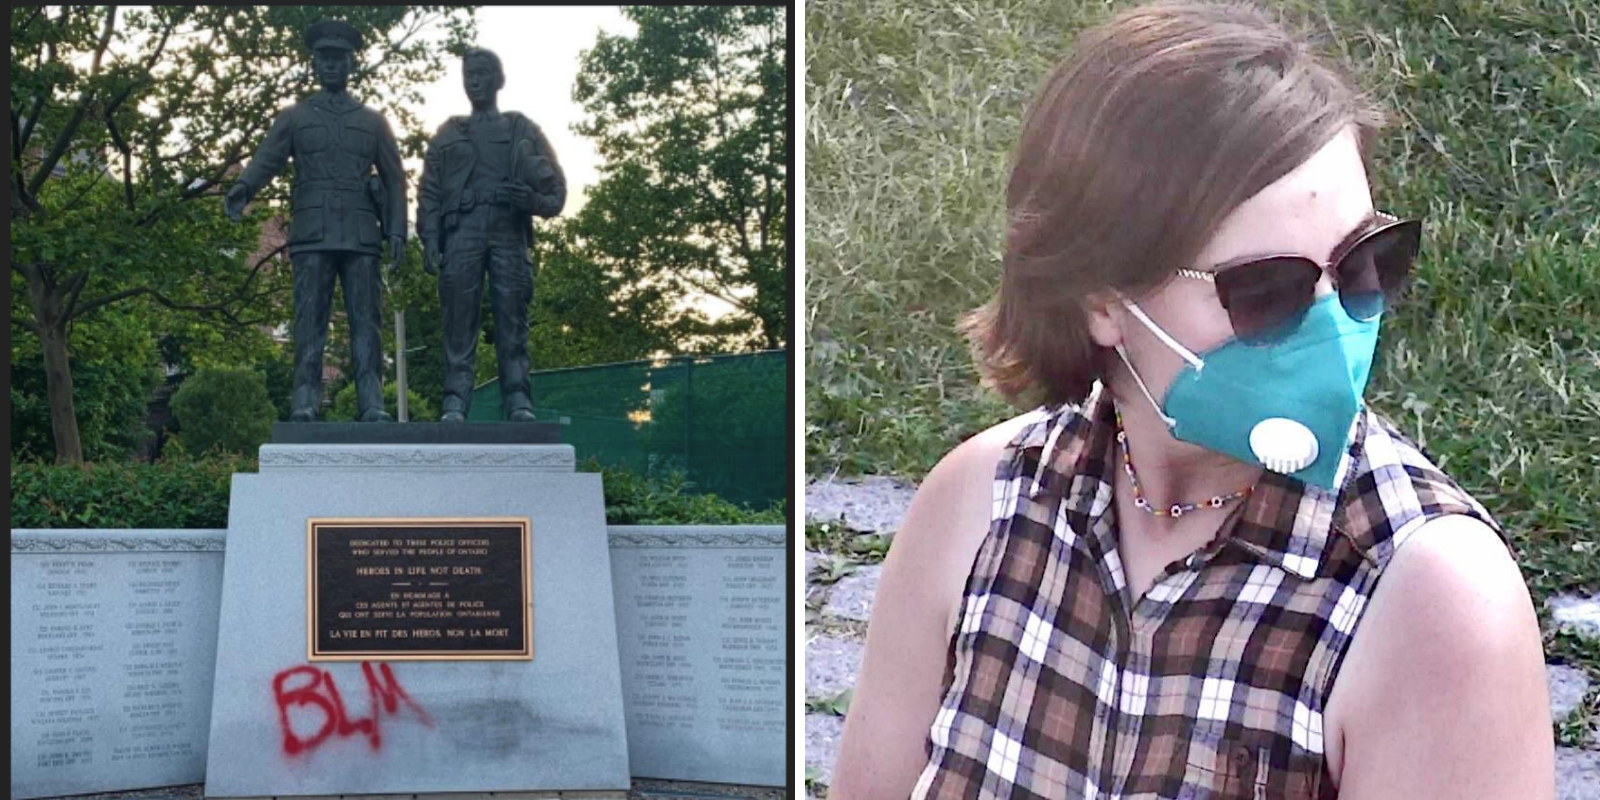 Ontario police call on public for information about suspect who vandalized police memorial